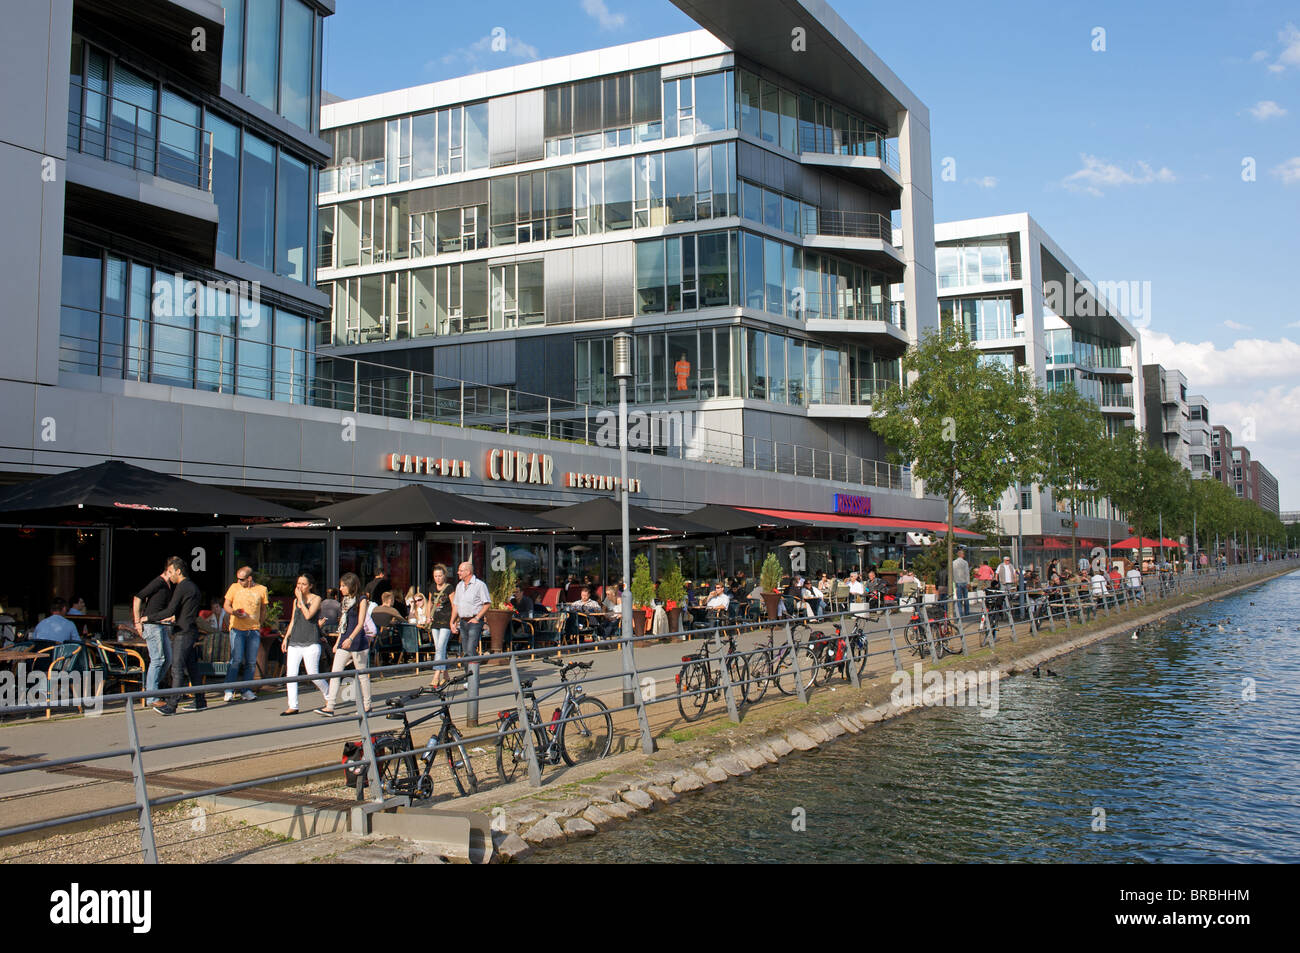 Waterfront cafes, restaurants and offices, Duisburg, North Rhine-Westphalia, Germany. - Stock Image